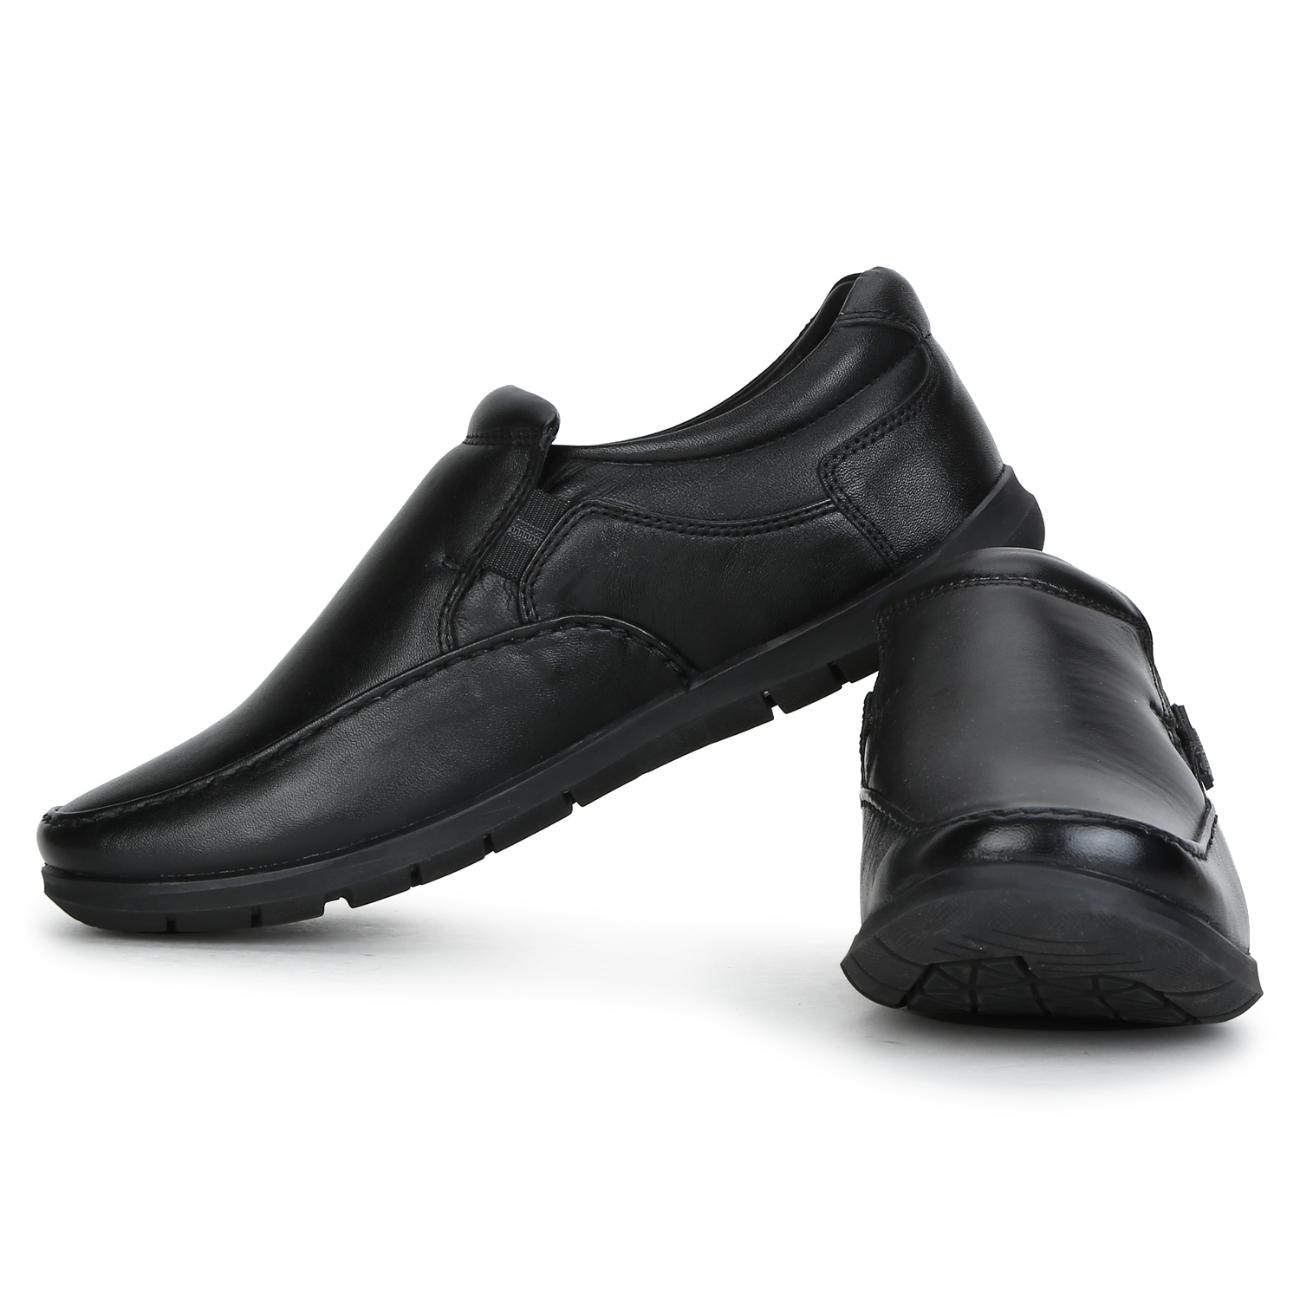 buy black leather slip-on formal shoes side view_1